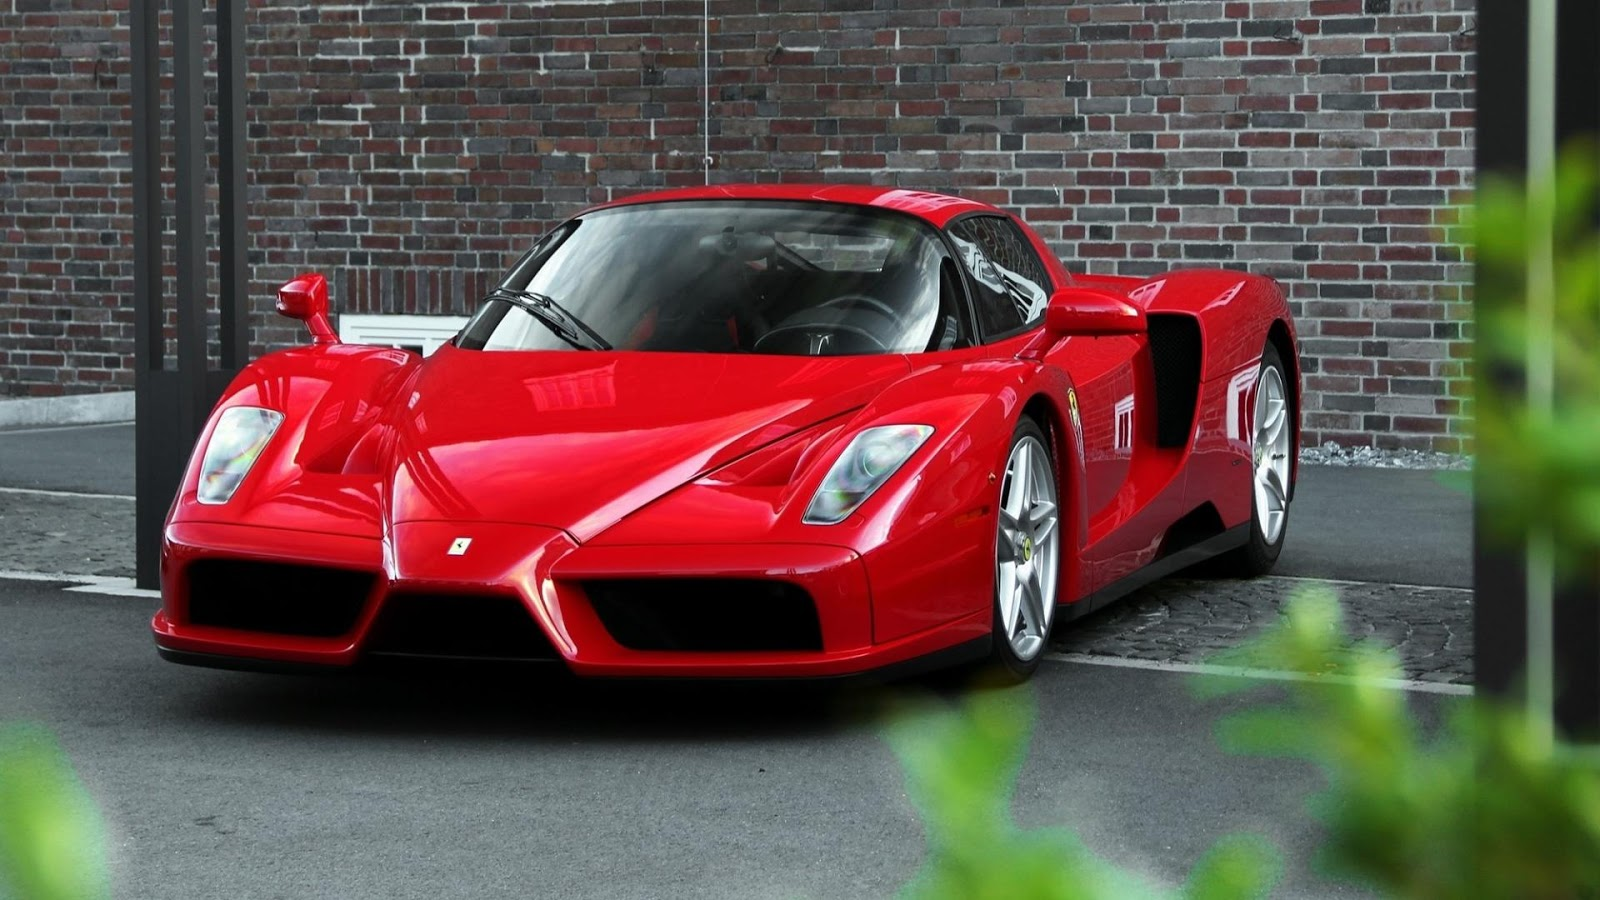 gambar transportasi gambar mobil sport ferrari enzo. Black Bedroom Furniture Sets. Home Design Ideas